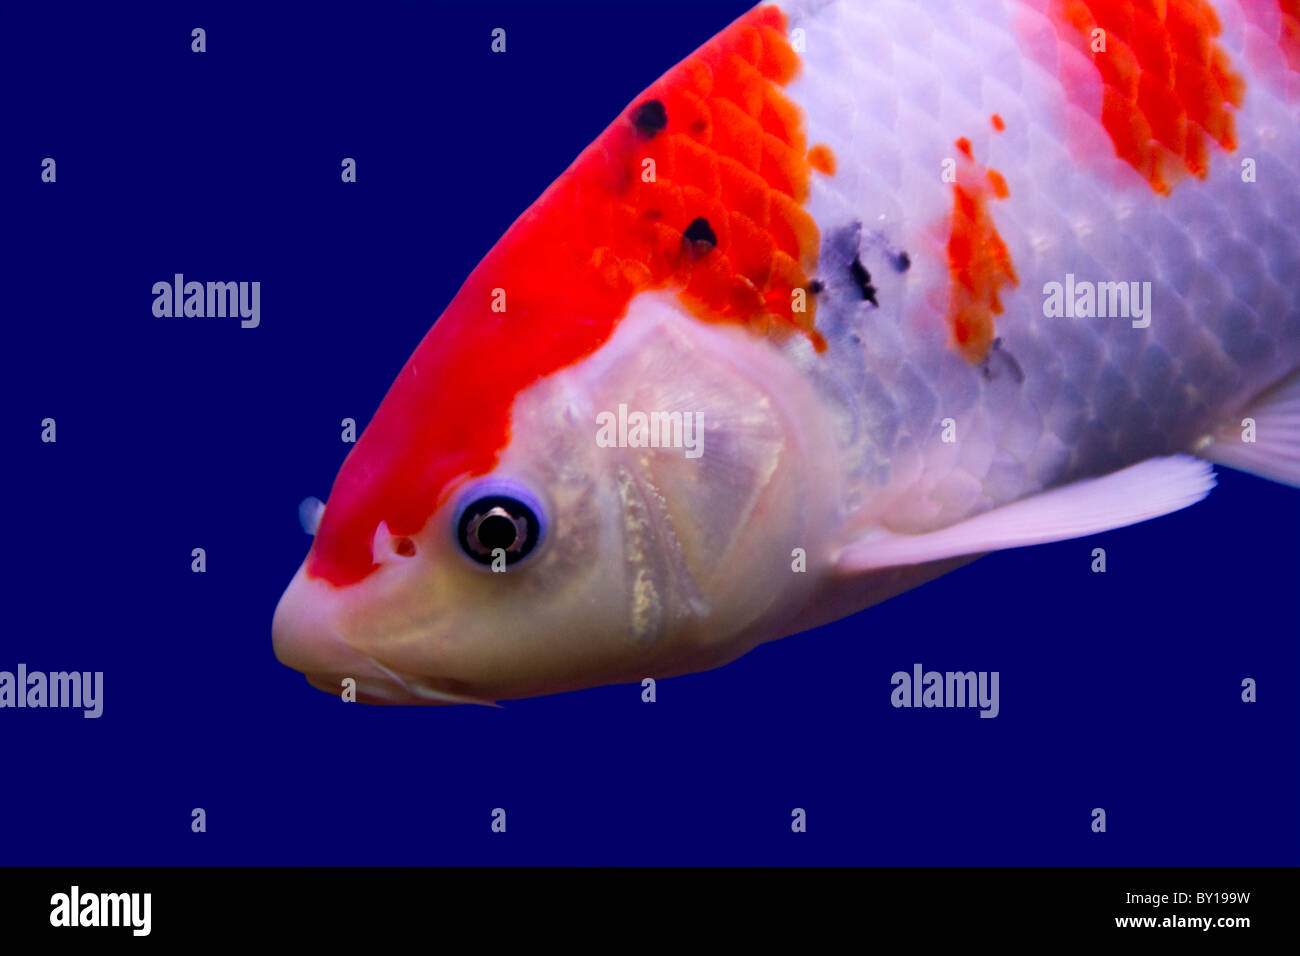 Golden Koi Carp Stock Photos & Golden Koi Carp Stock Images - Page 3 ...